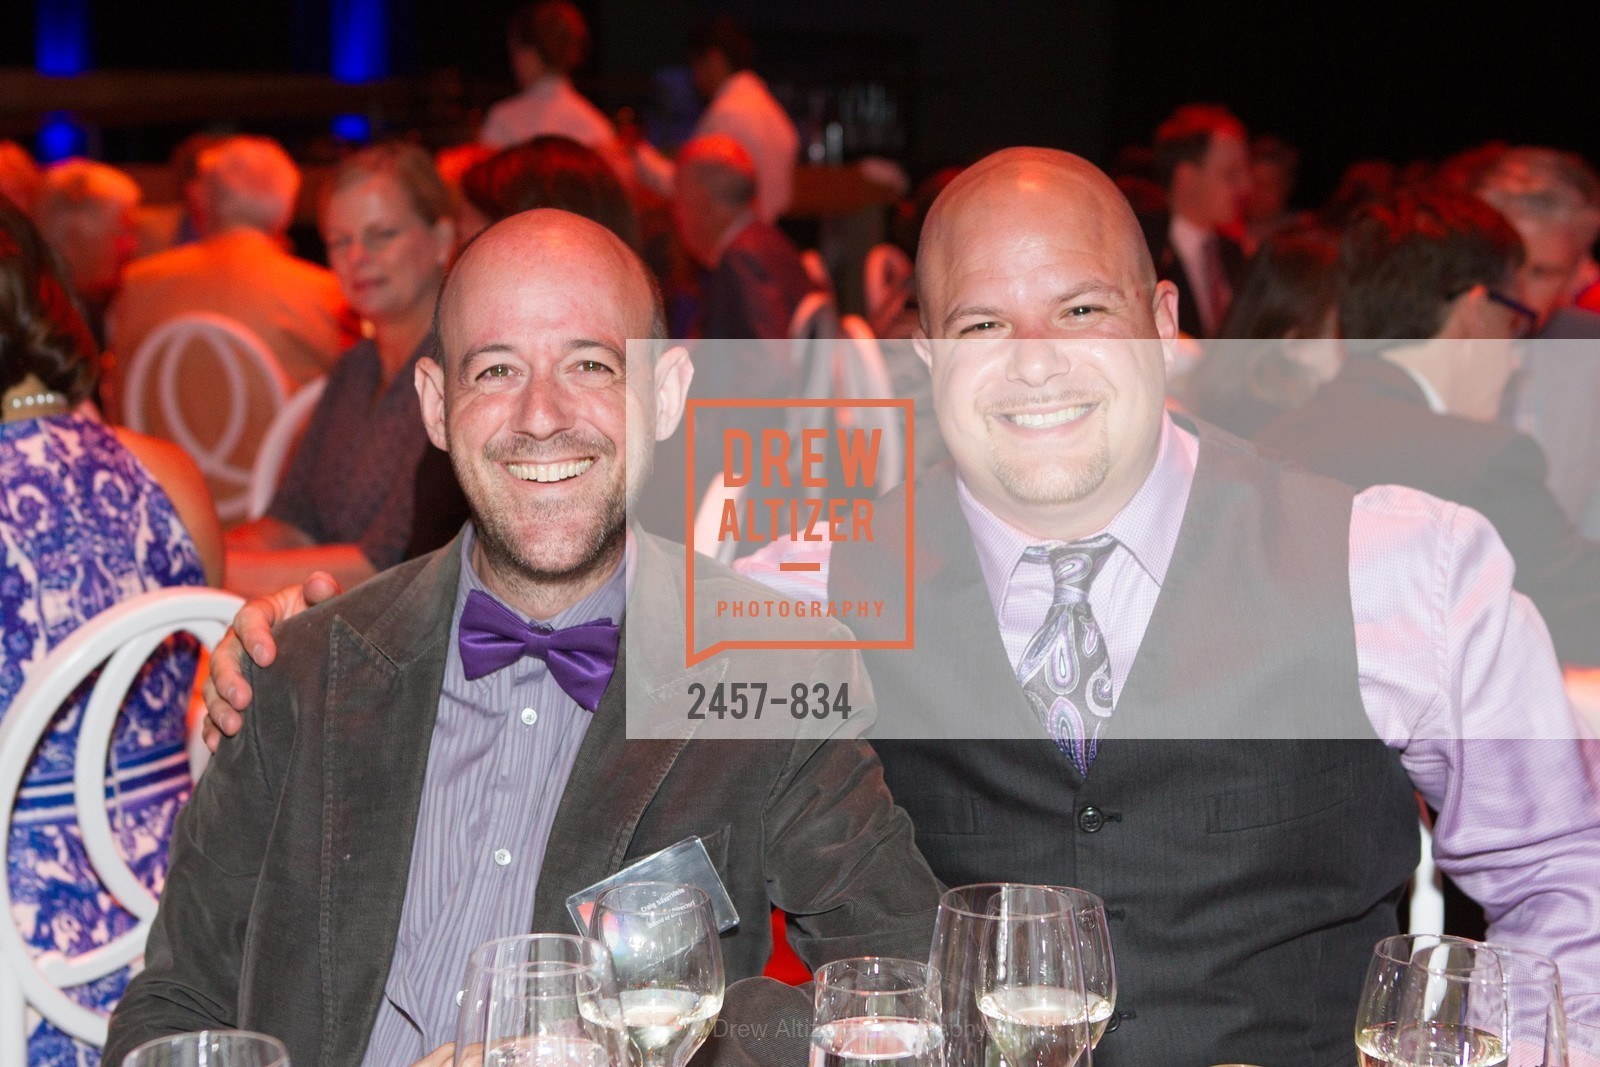 Craig Silverstein, Jed Davido, Exploratorium Spring Gala, Exploratorium, 140515, May 15th, 2014,Drew Altizer, Drew Altizer Photography, full-service agency, private events, San Francisco photographer, photographer california